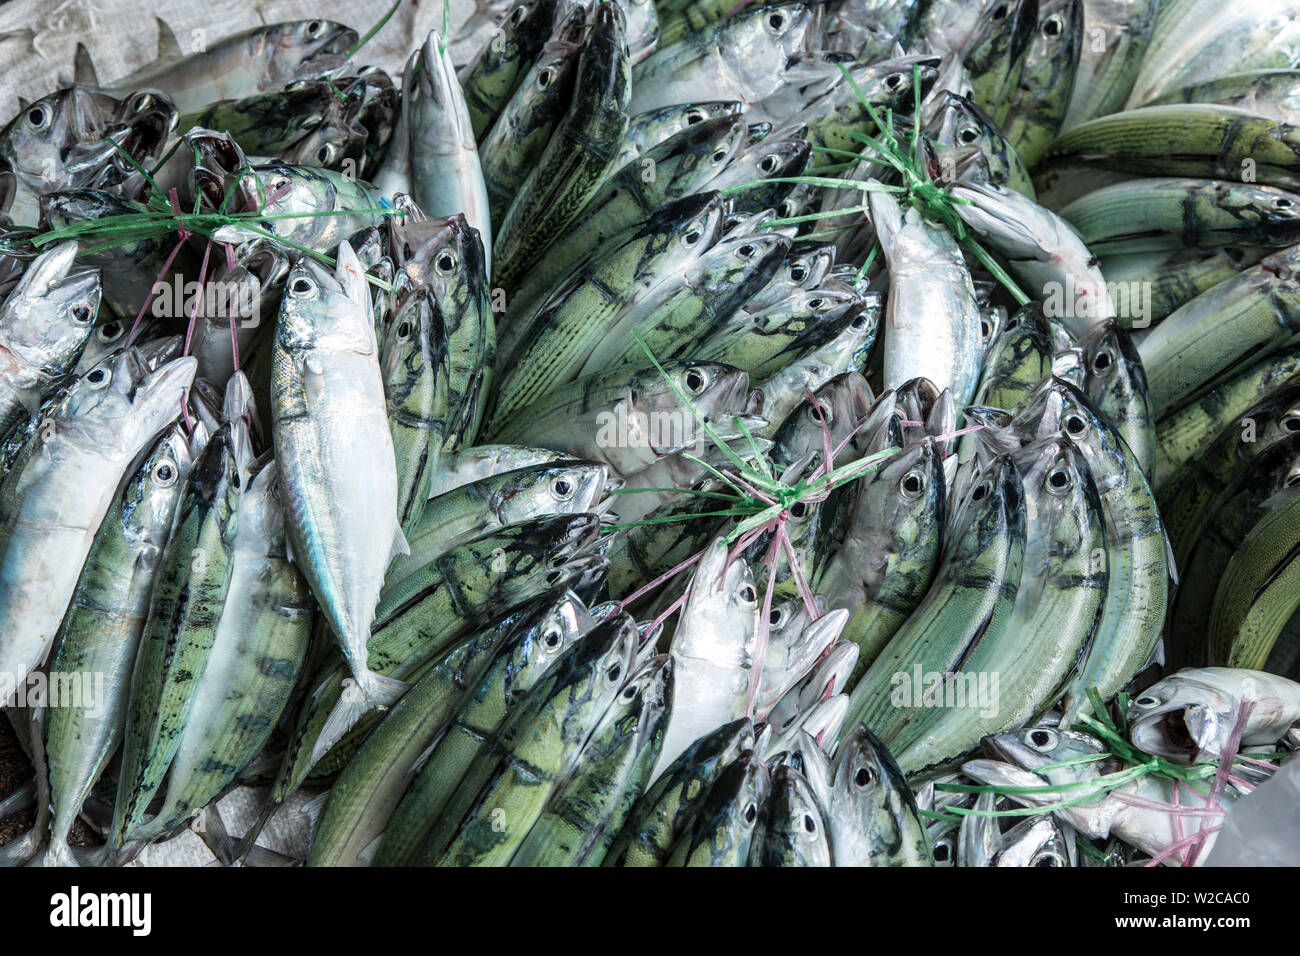 Fish displayed in the market in Victoria, Mahe, Seychelles - Stock Image